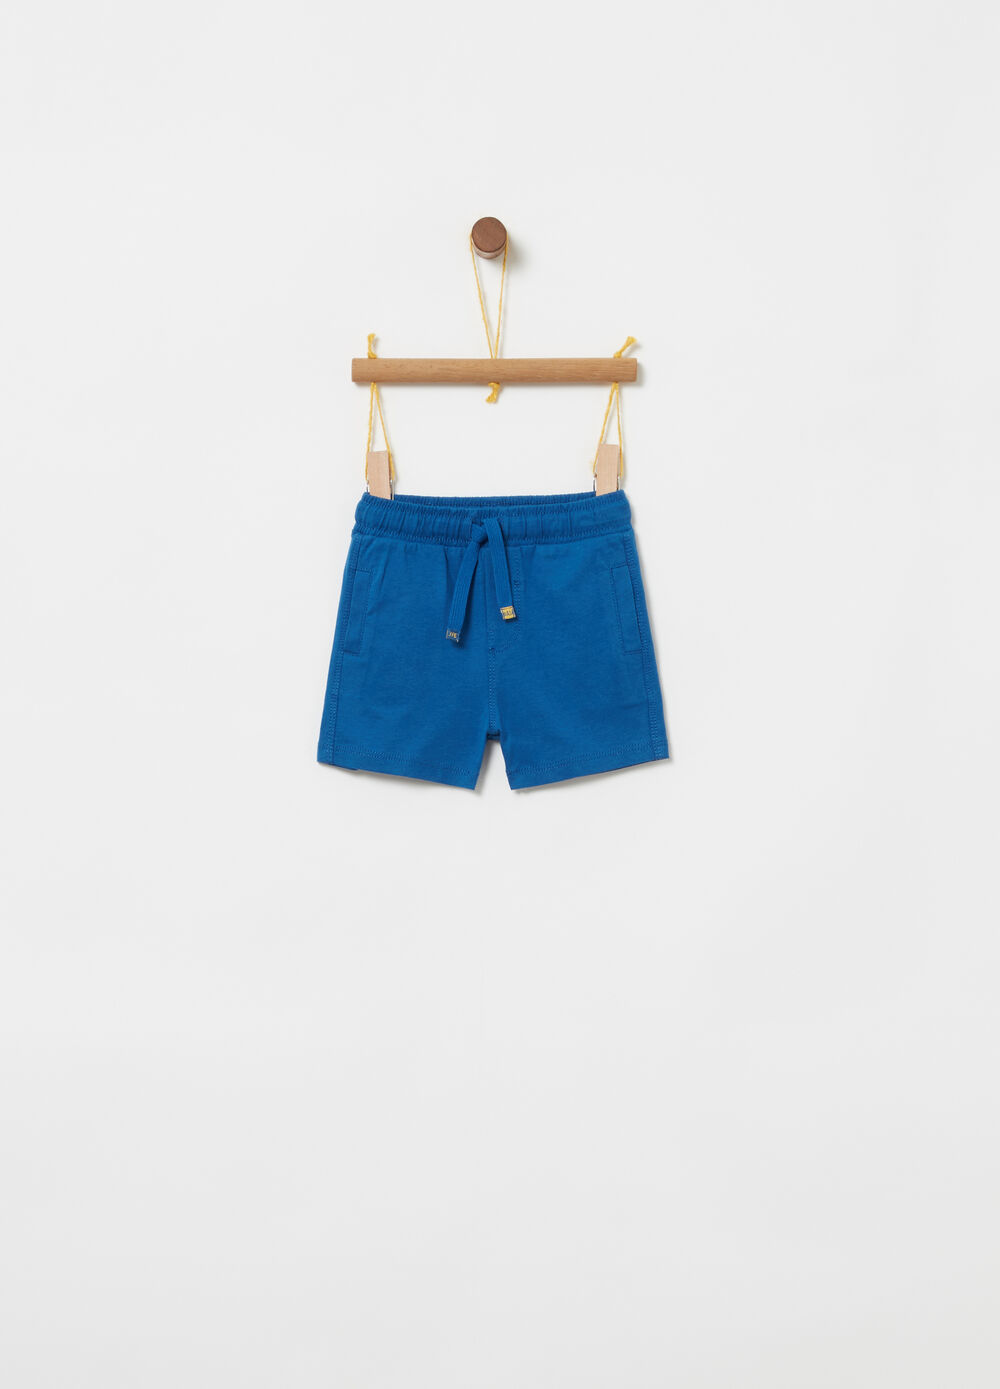 8f59eaa57d9 100% cotton jersey shorts with drawstring